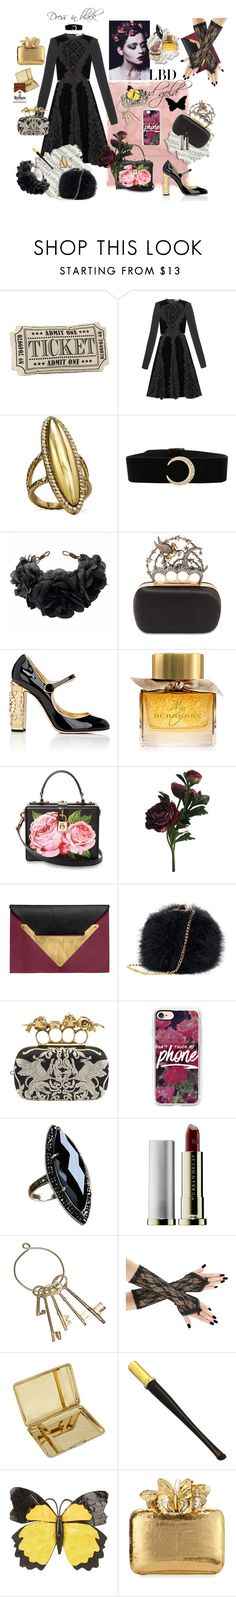 """Black gold"" by whiteangelsoul ❤ liked on Polyvore featuring Rothko, Givenchy, House of Harlow 1960, Rock 'N Rose, Alexander McQueen, Dolce&Gabbana, Burberry, Dareen Hakim, Casetify and Urban Decay"